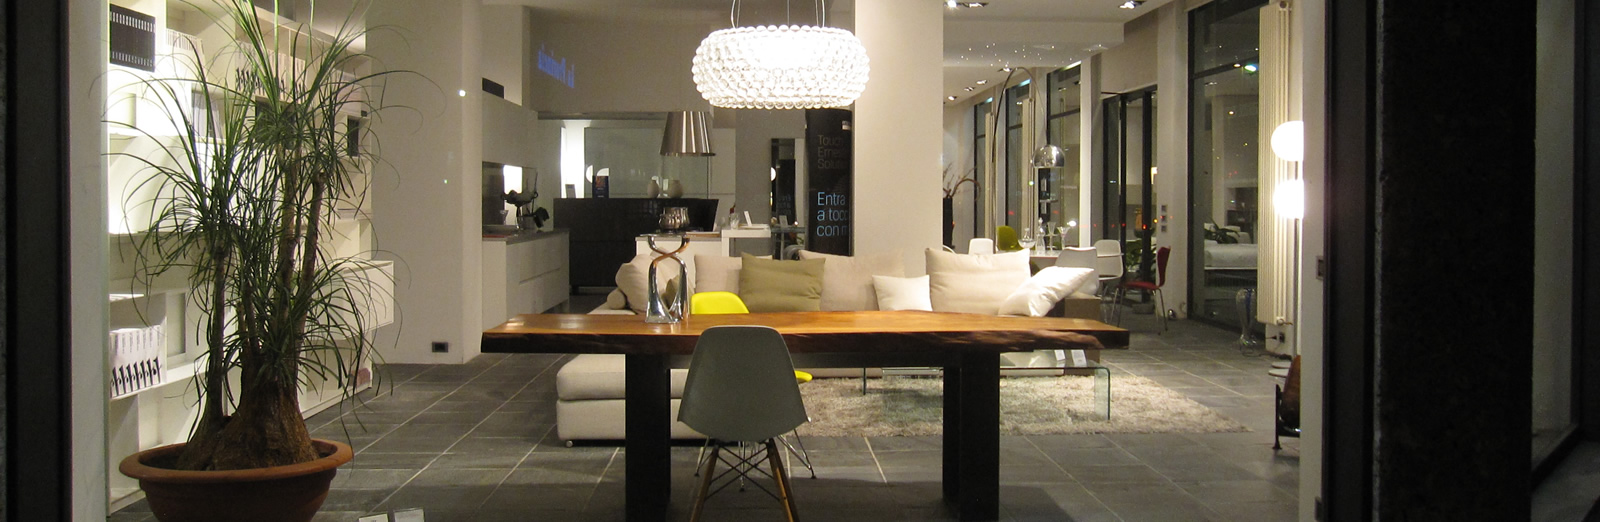 Showroom Villa Guardia - showrooms Gerosa Design